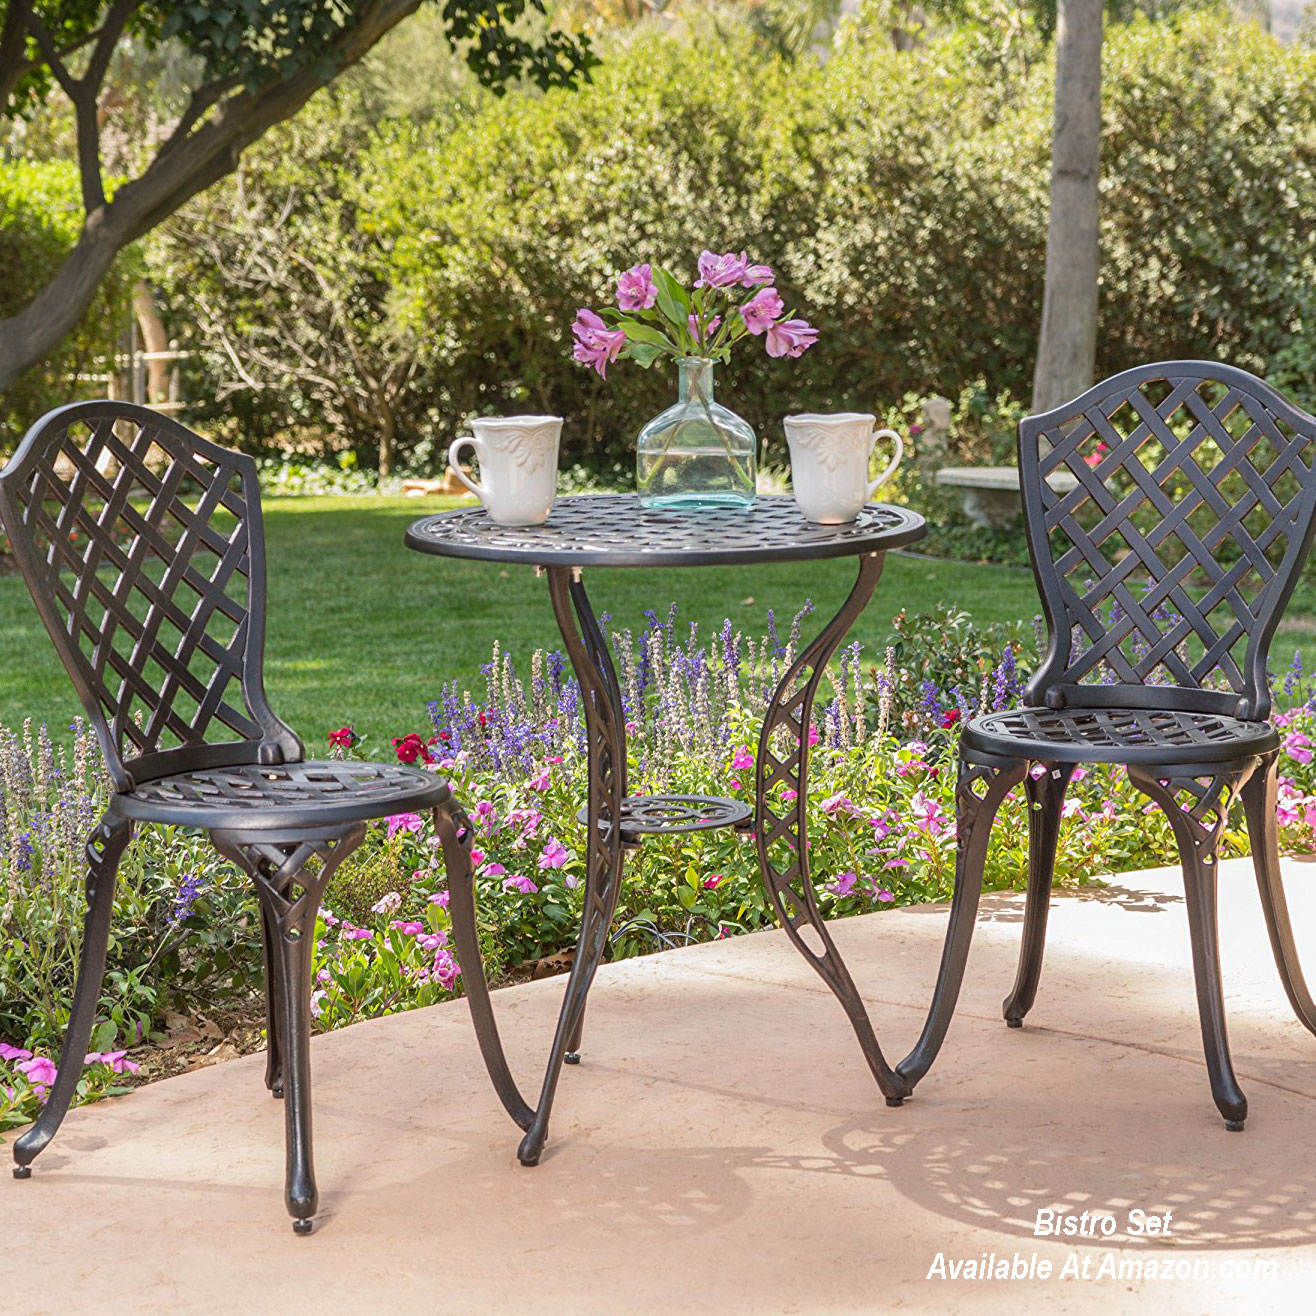 Bistro set fits in a small space